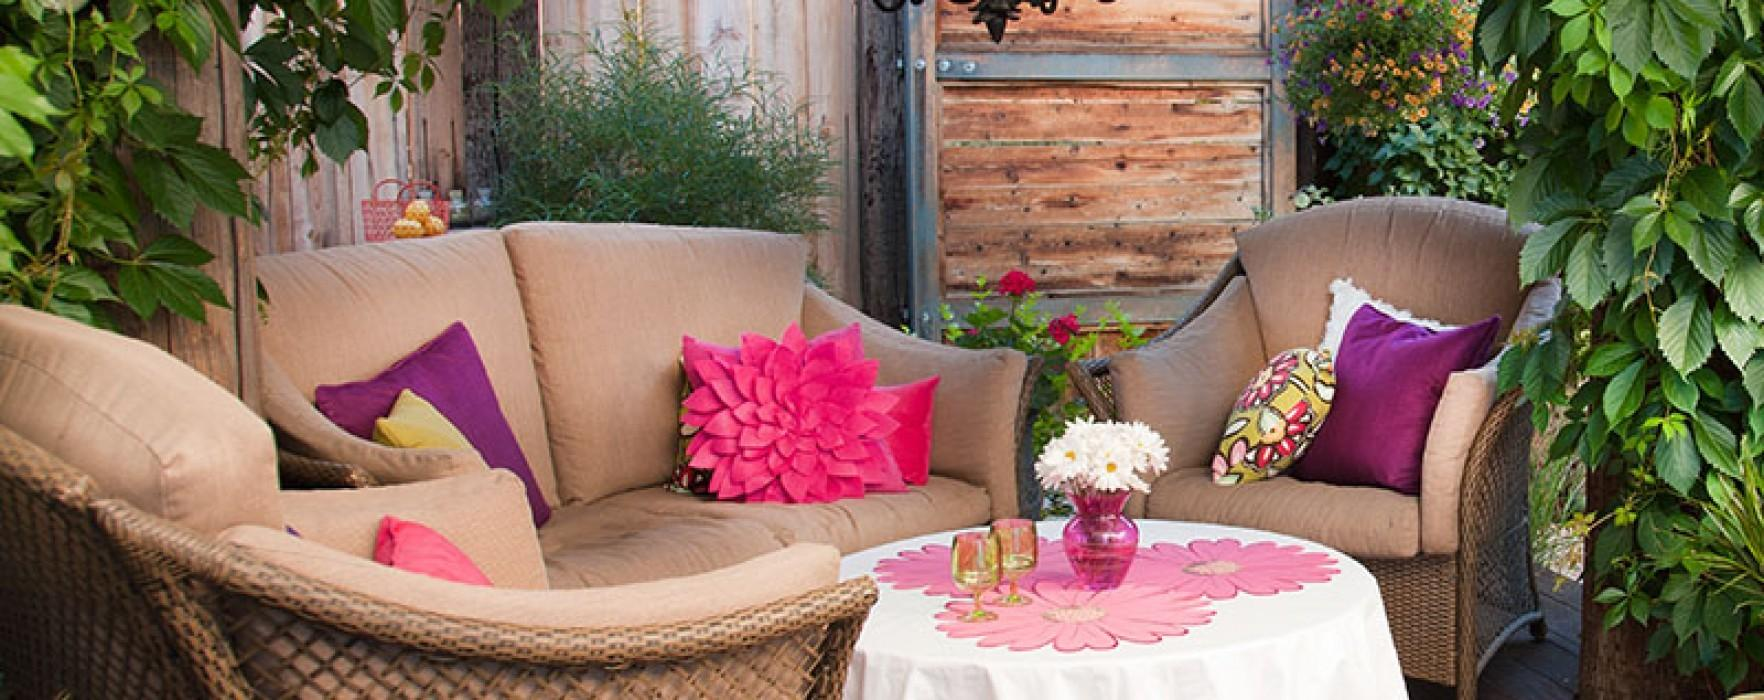 Big Outdoor Entertaining Ideas Small Spaces Better